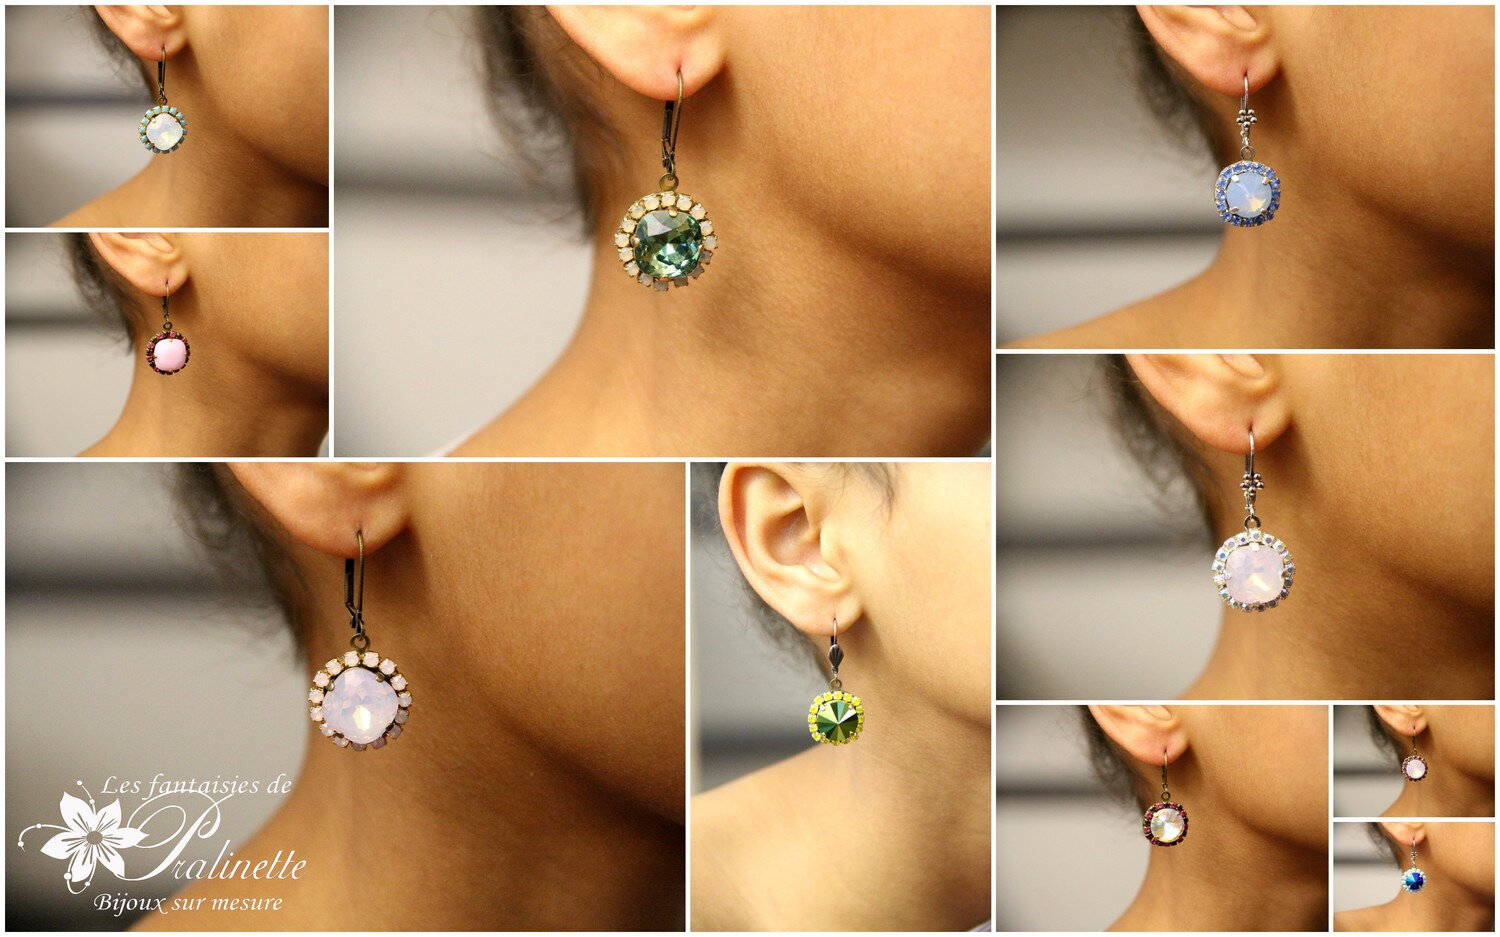 bijoux-clous-d-oreilles-dormeuses-strass-cristal-mariage-intemporel-portes-loverly-earrings